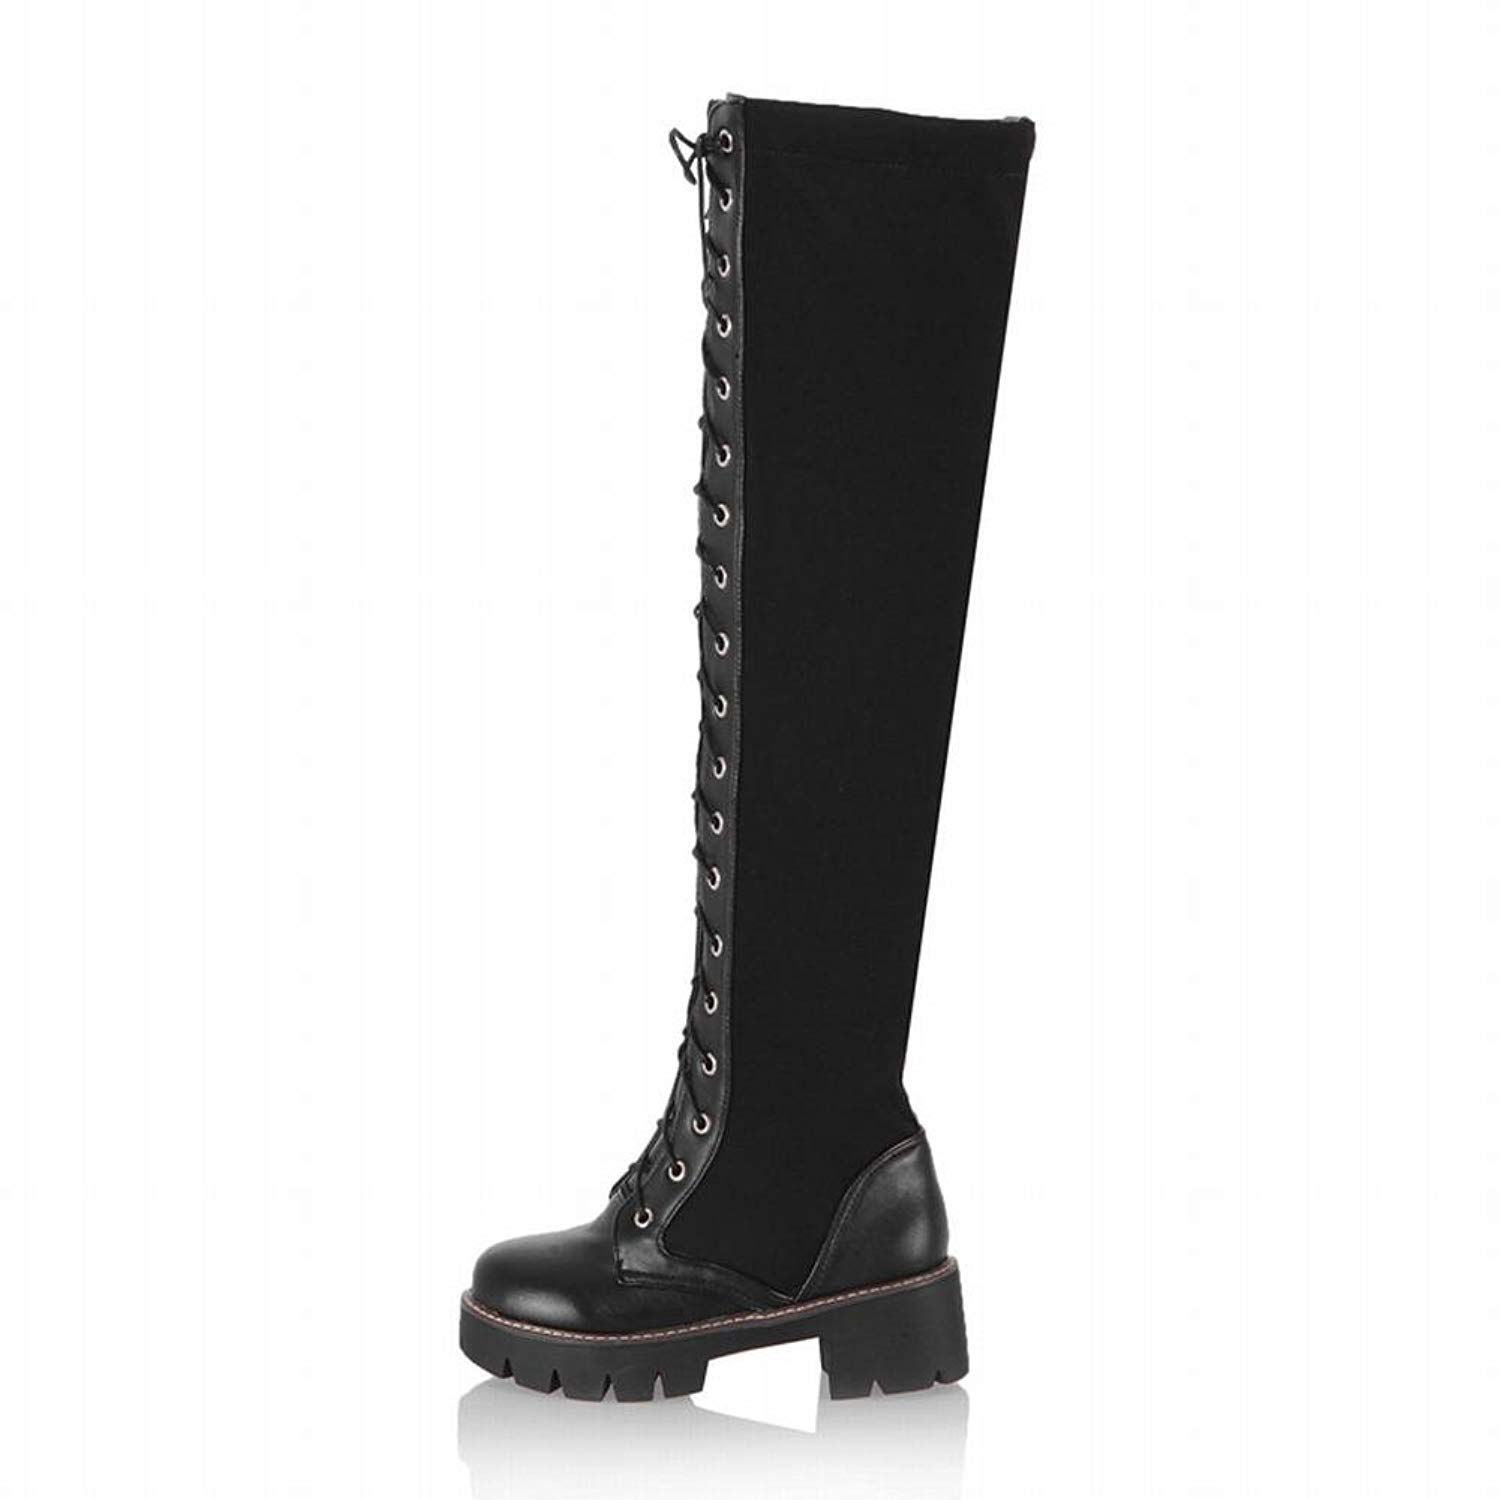 8c8ebed82e12 Carolbar Women s Zip Lace Up Comfort Fashion Mid Heel Riding Tall Boots      More